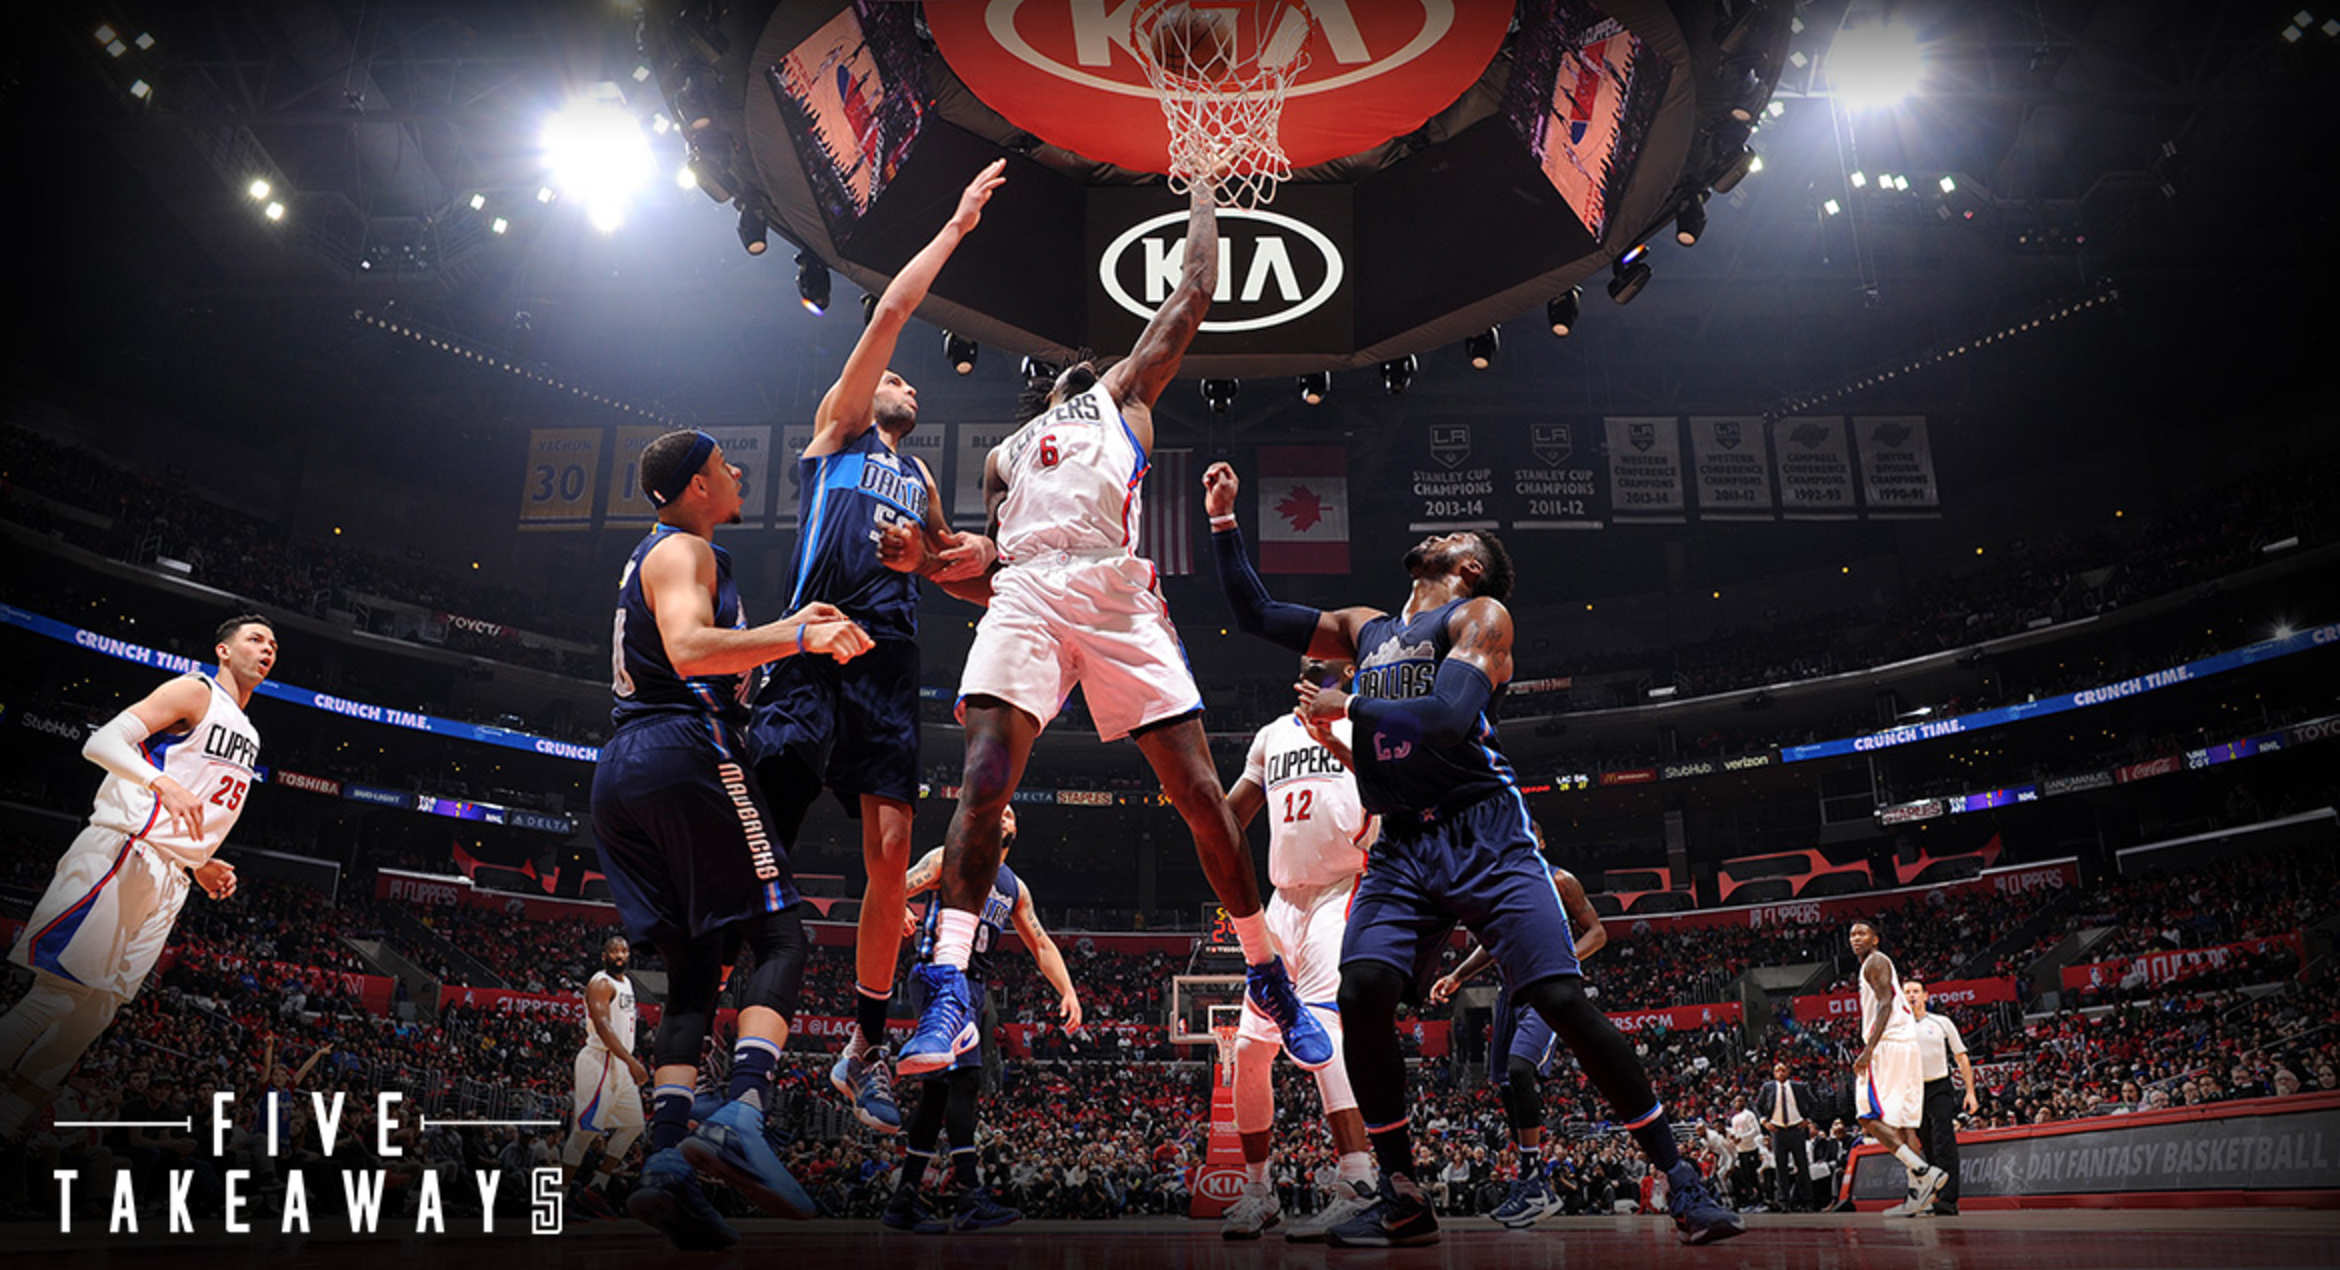 Five Takeaways: Shorthanded Clippers Fall To Mavericks, 90-88